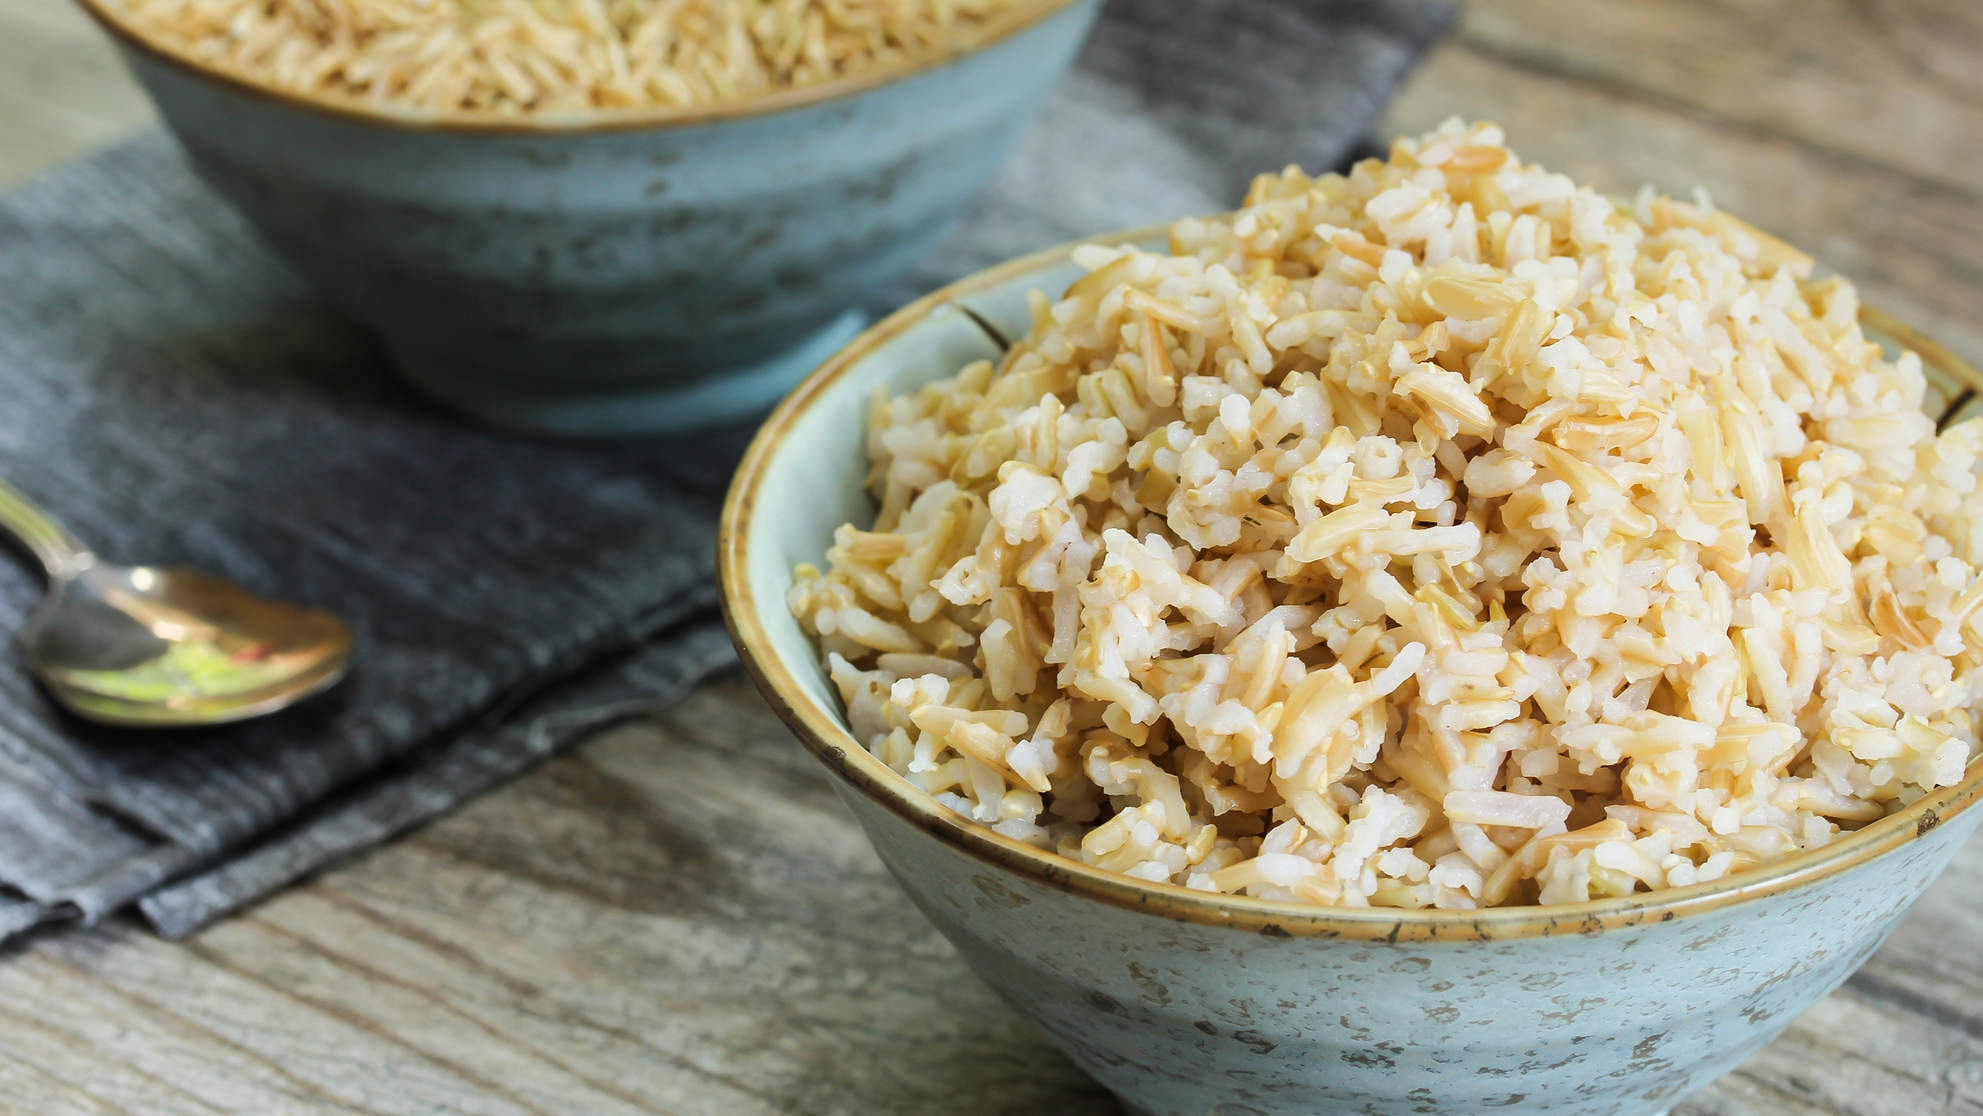 6 Tips for Cooking Brown Rice Perfectly